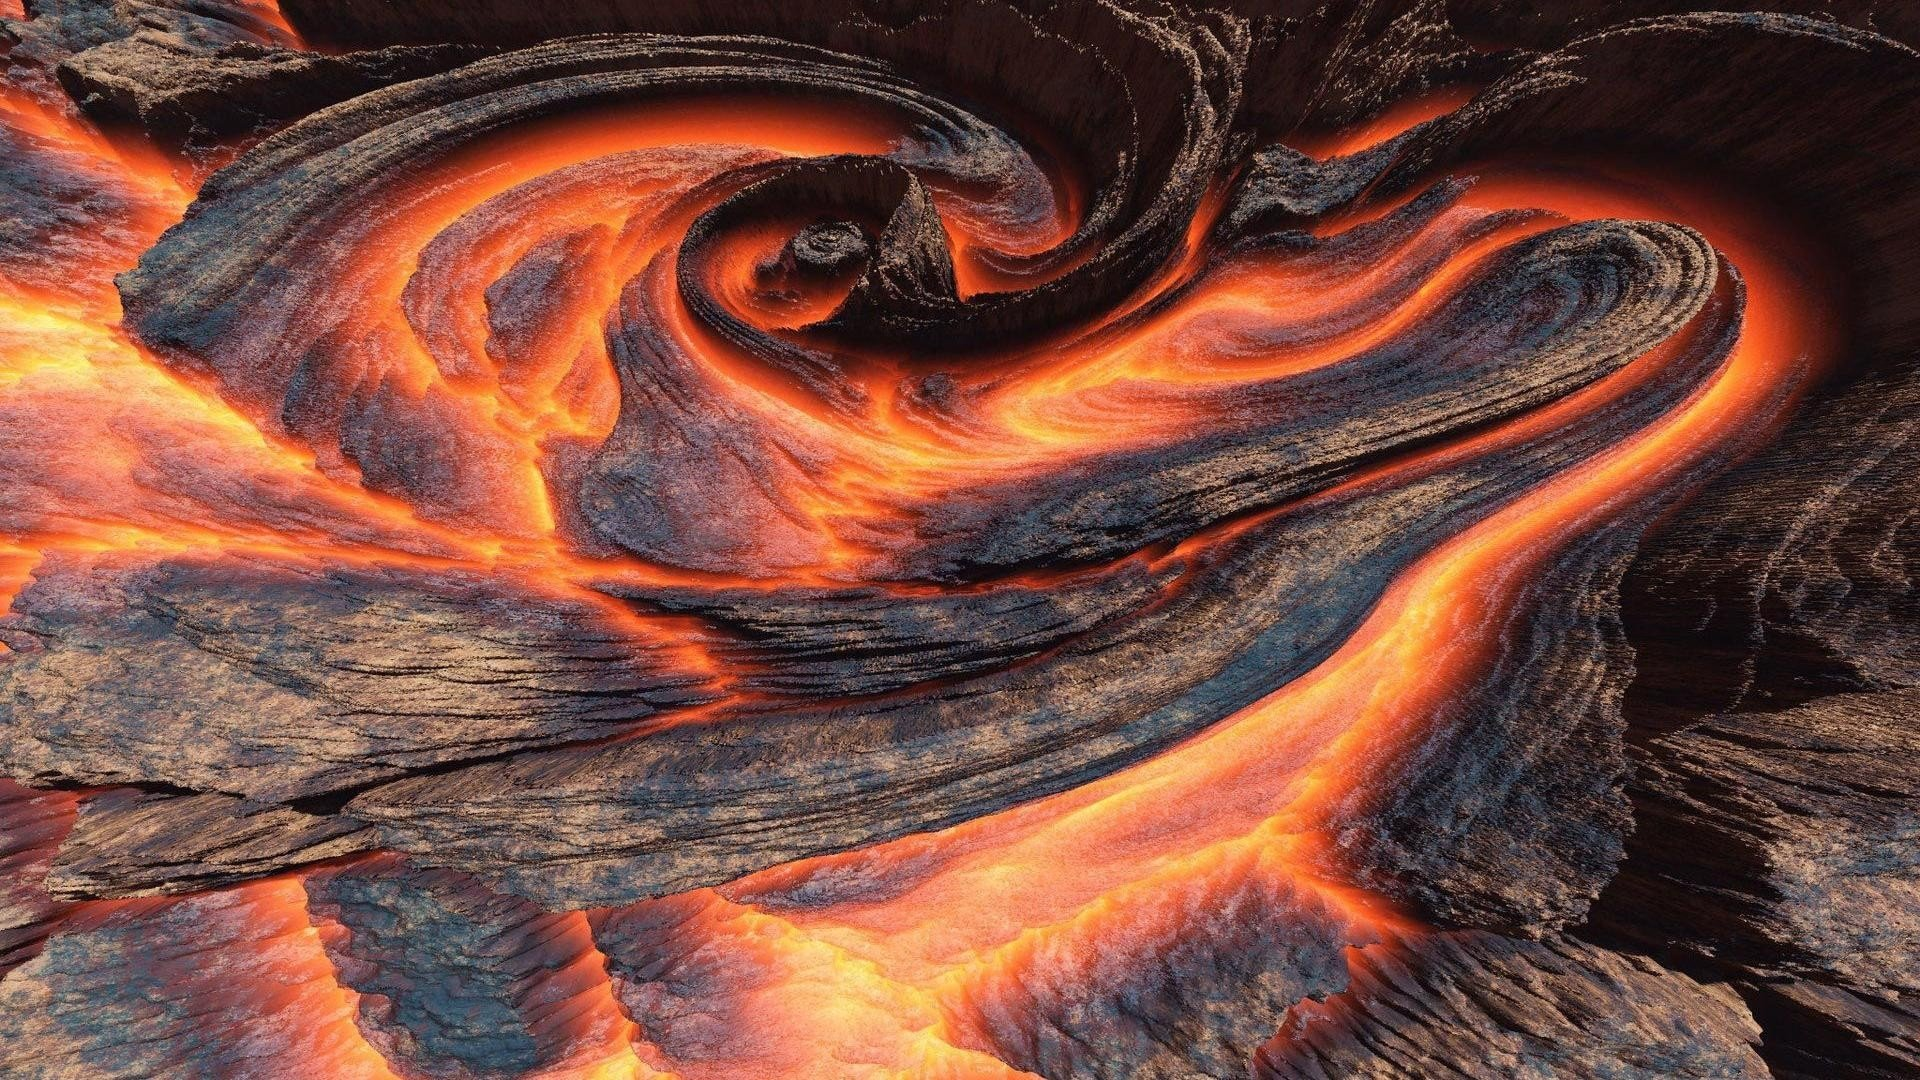 155 Volcano HD Wallpapers   Backgrounds - Wallpaper Abyss